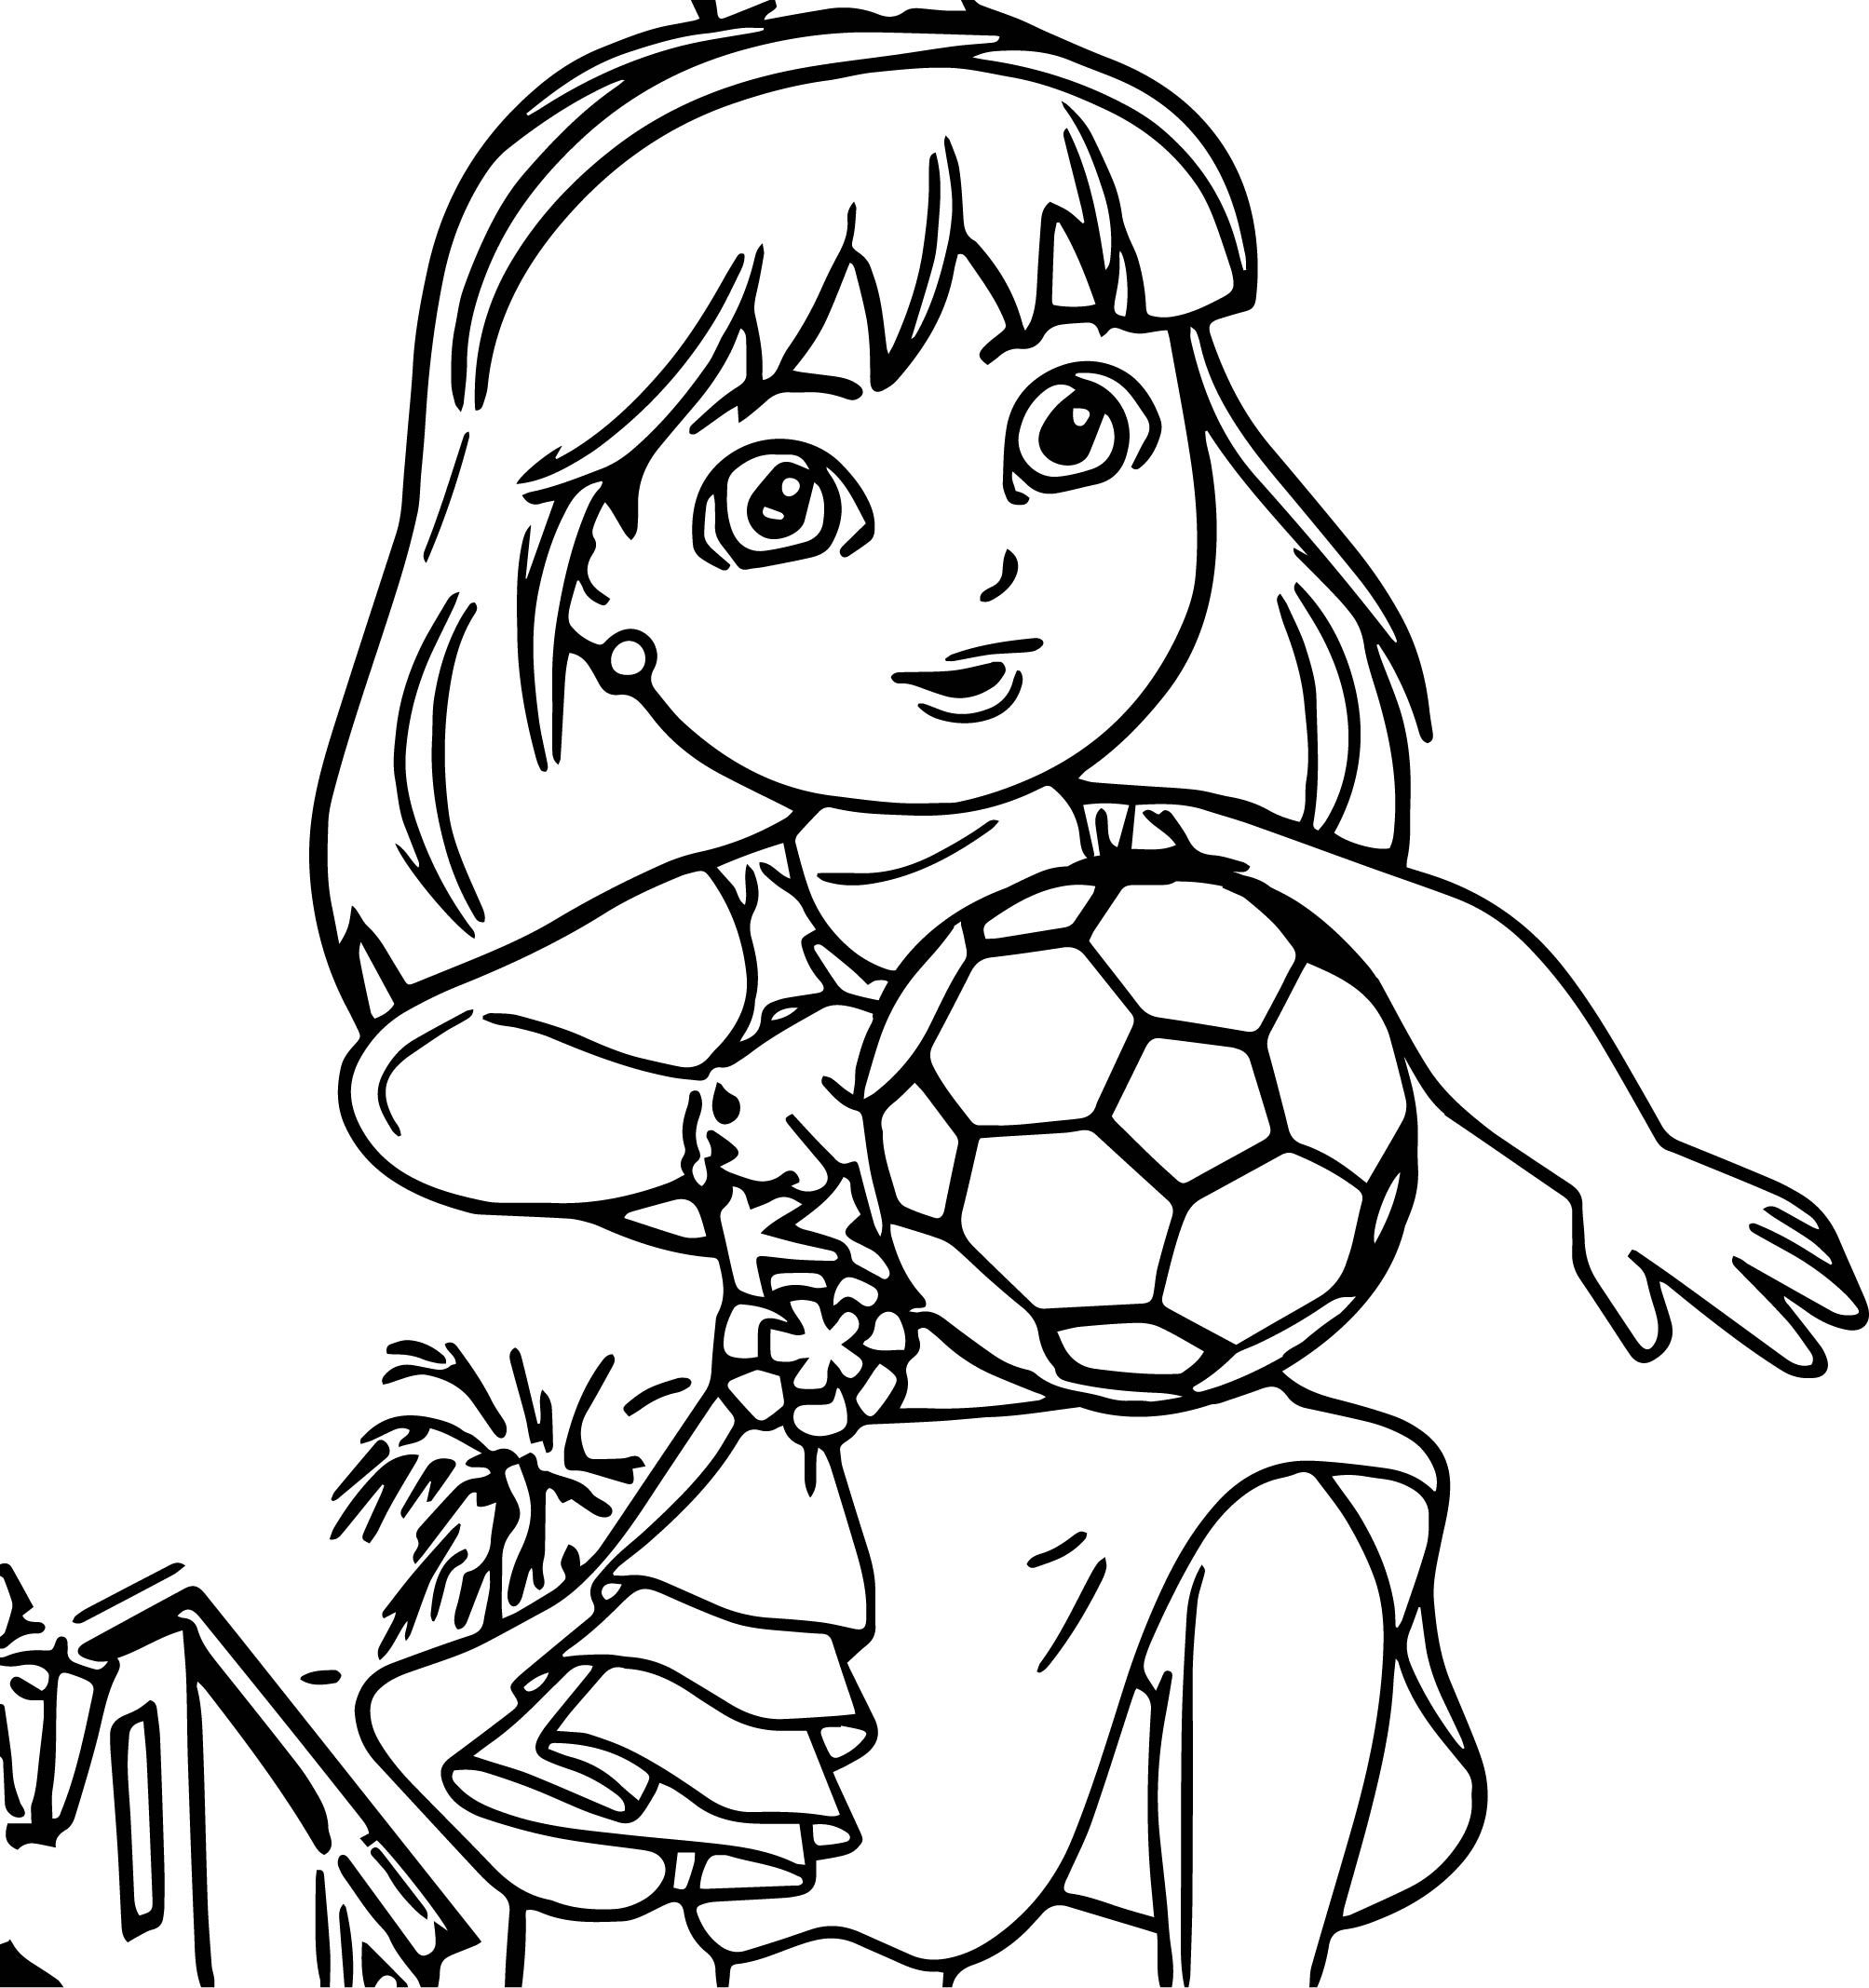 coloring pages dora and friends dora and friends drawing at getdrawings free download dora pages coloring and friends